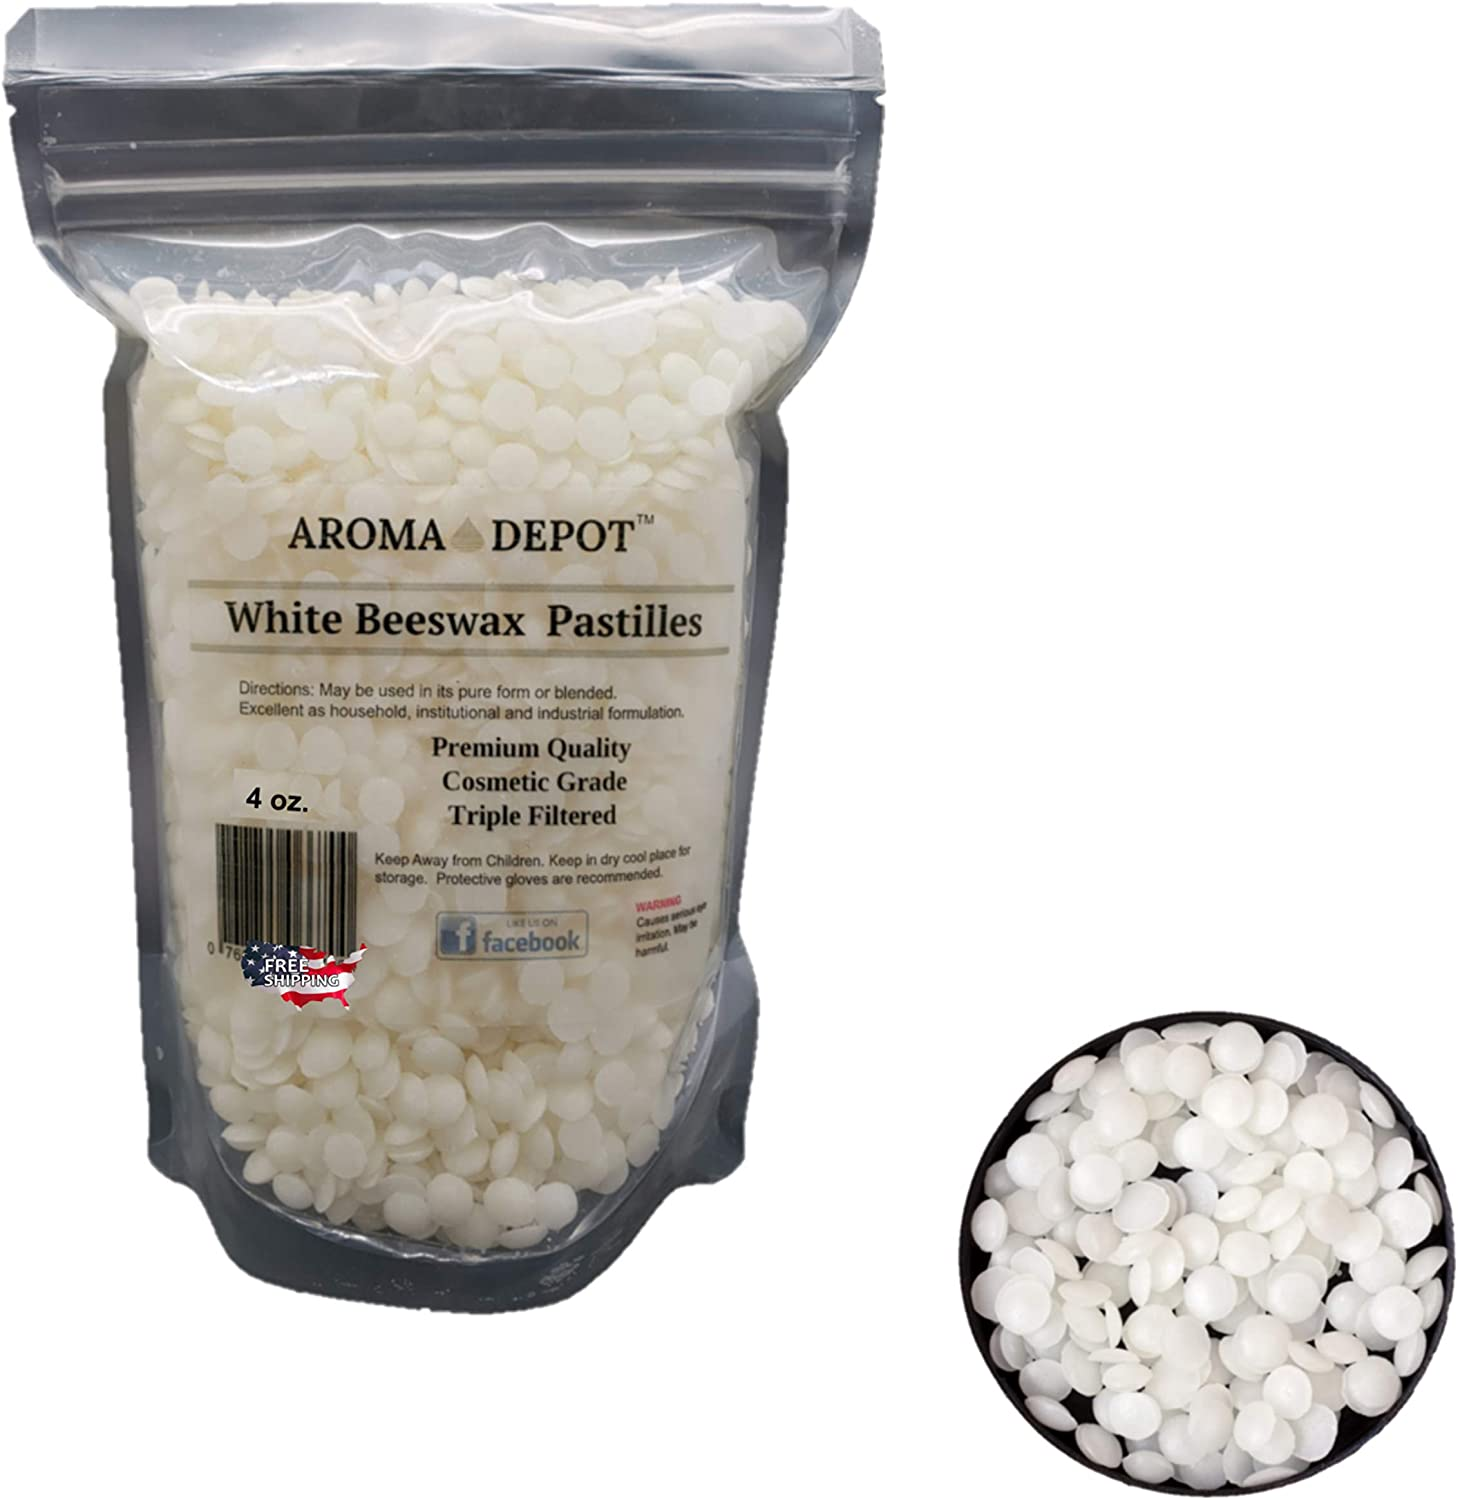 Aroma Depot 4 oz White Beeswax Pellets 100% Natural Pure Bees Wax 3 x Filtered, Great for Skin, Face & Body, Ideal for DIY, Lotion, Creams, Soaps, Lip Balm and Candle Making Supplies. Easy Melt